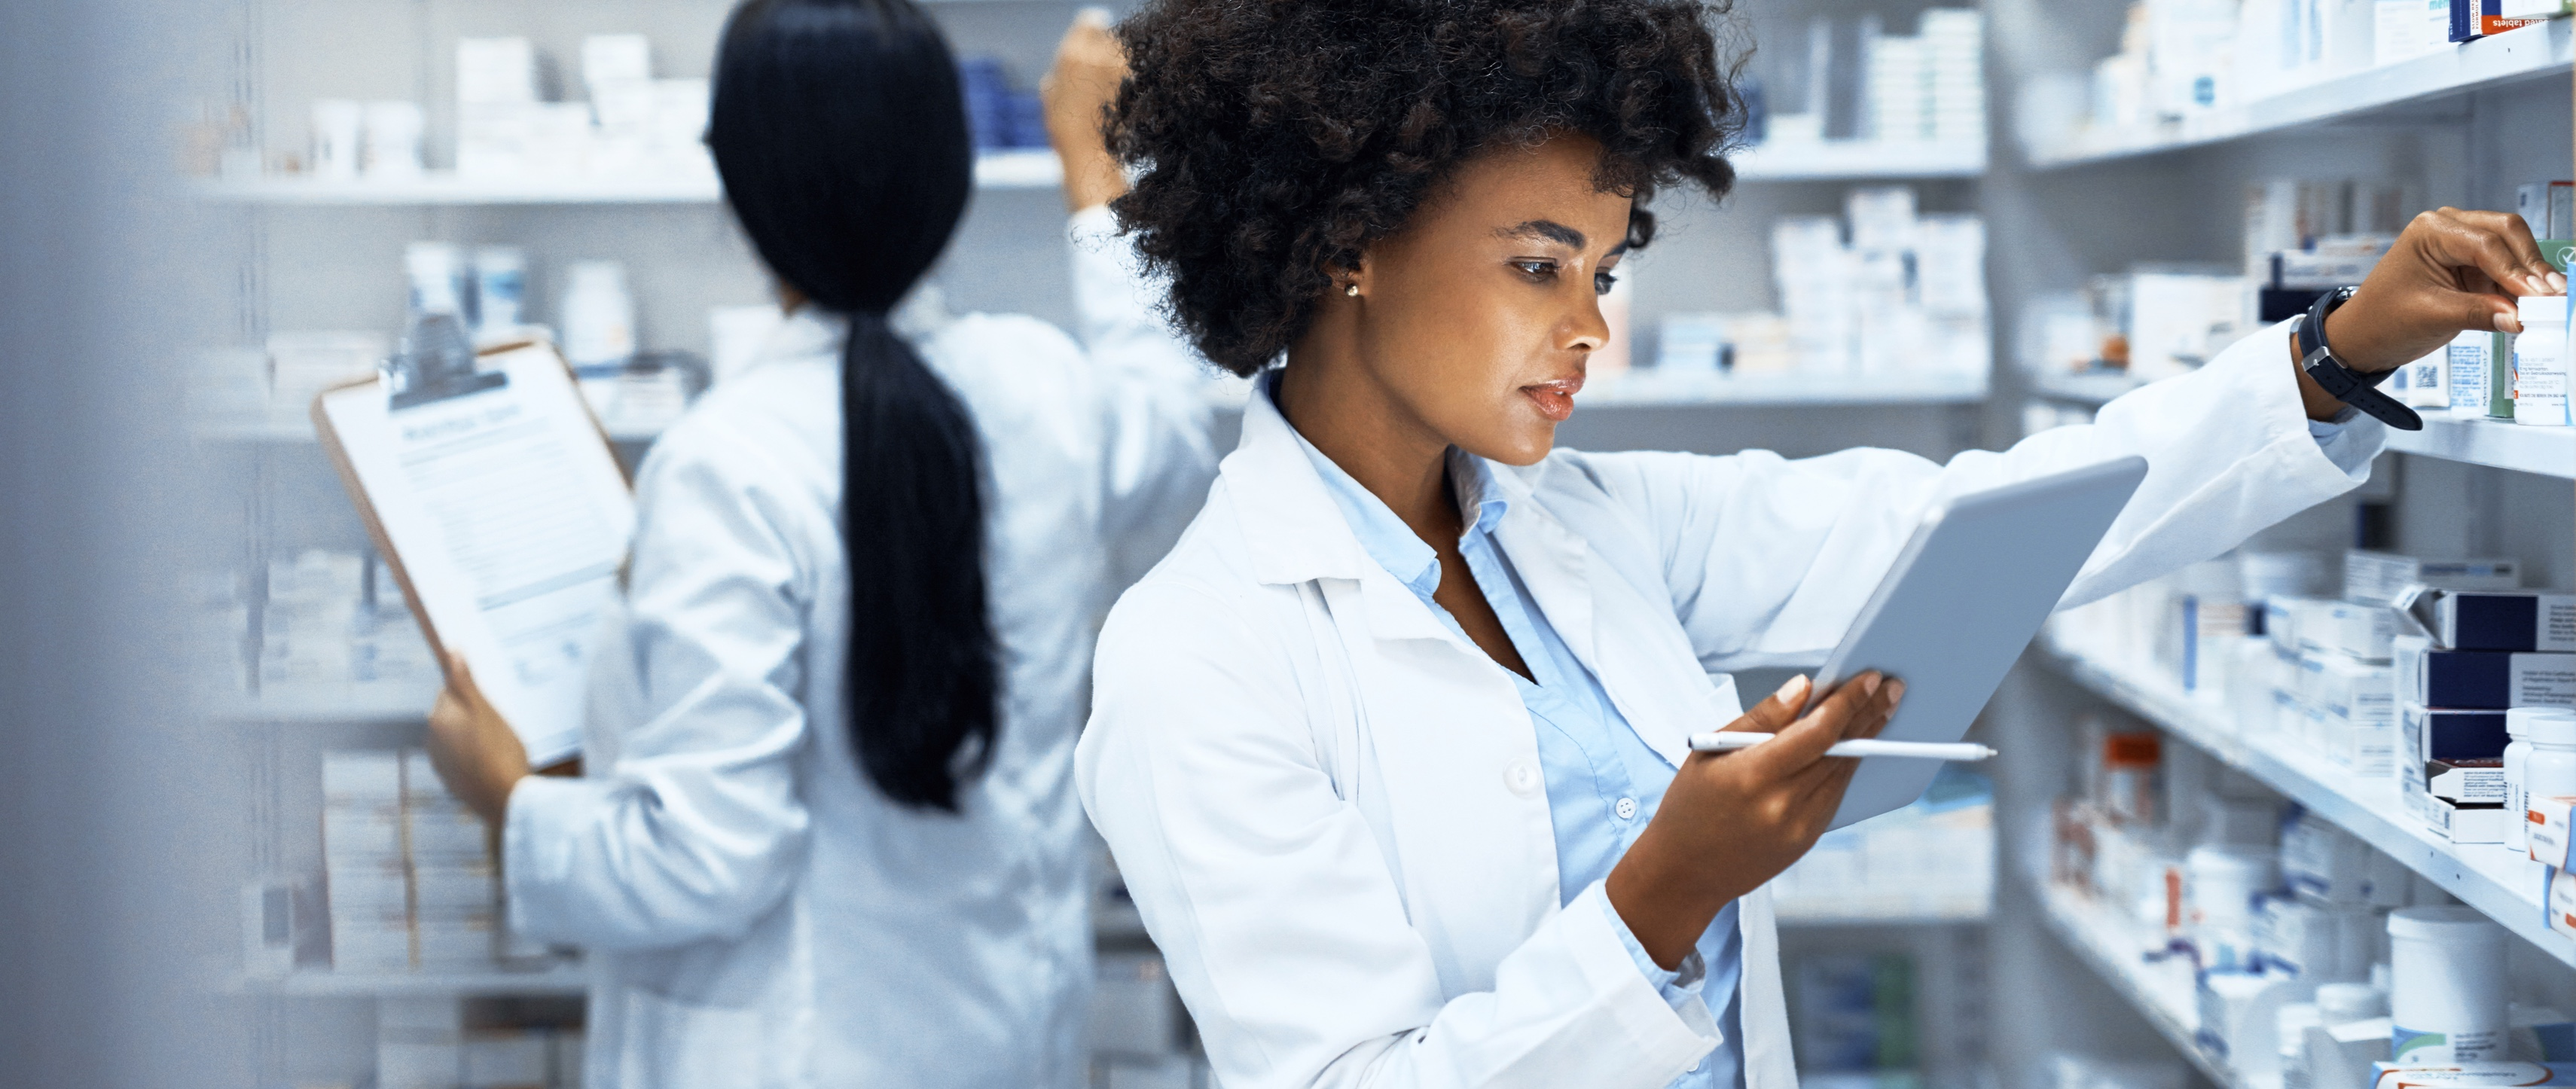 young woman doing inventory in a pharmacy on a digital tablet with her colleague in the background